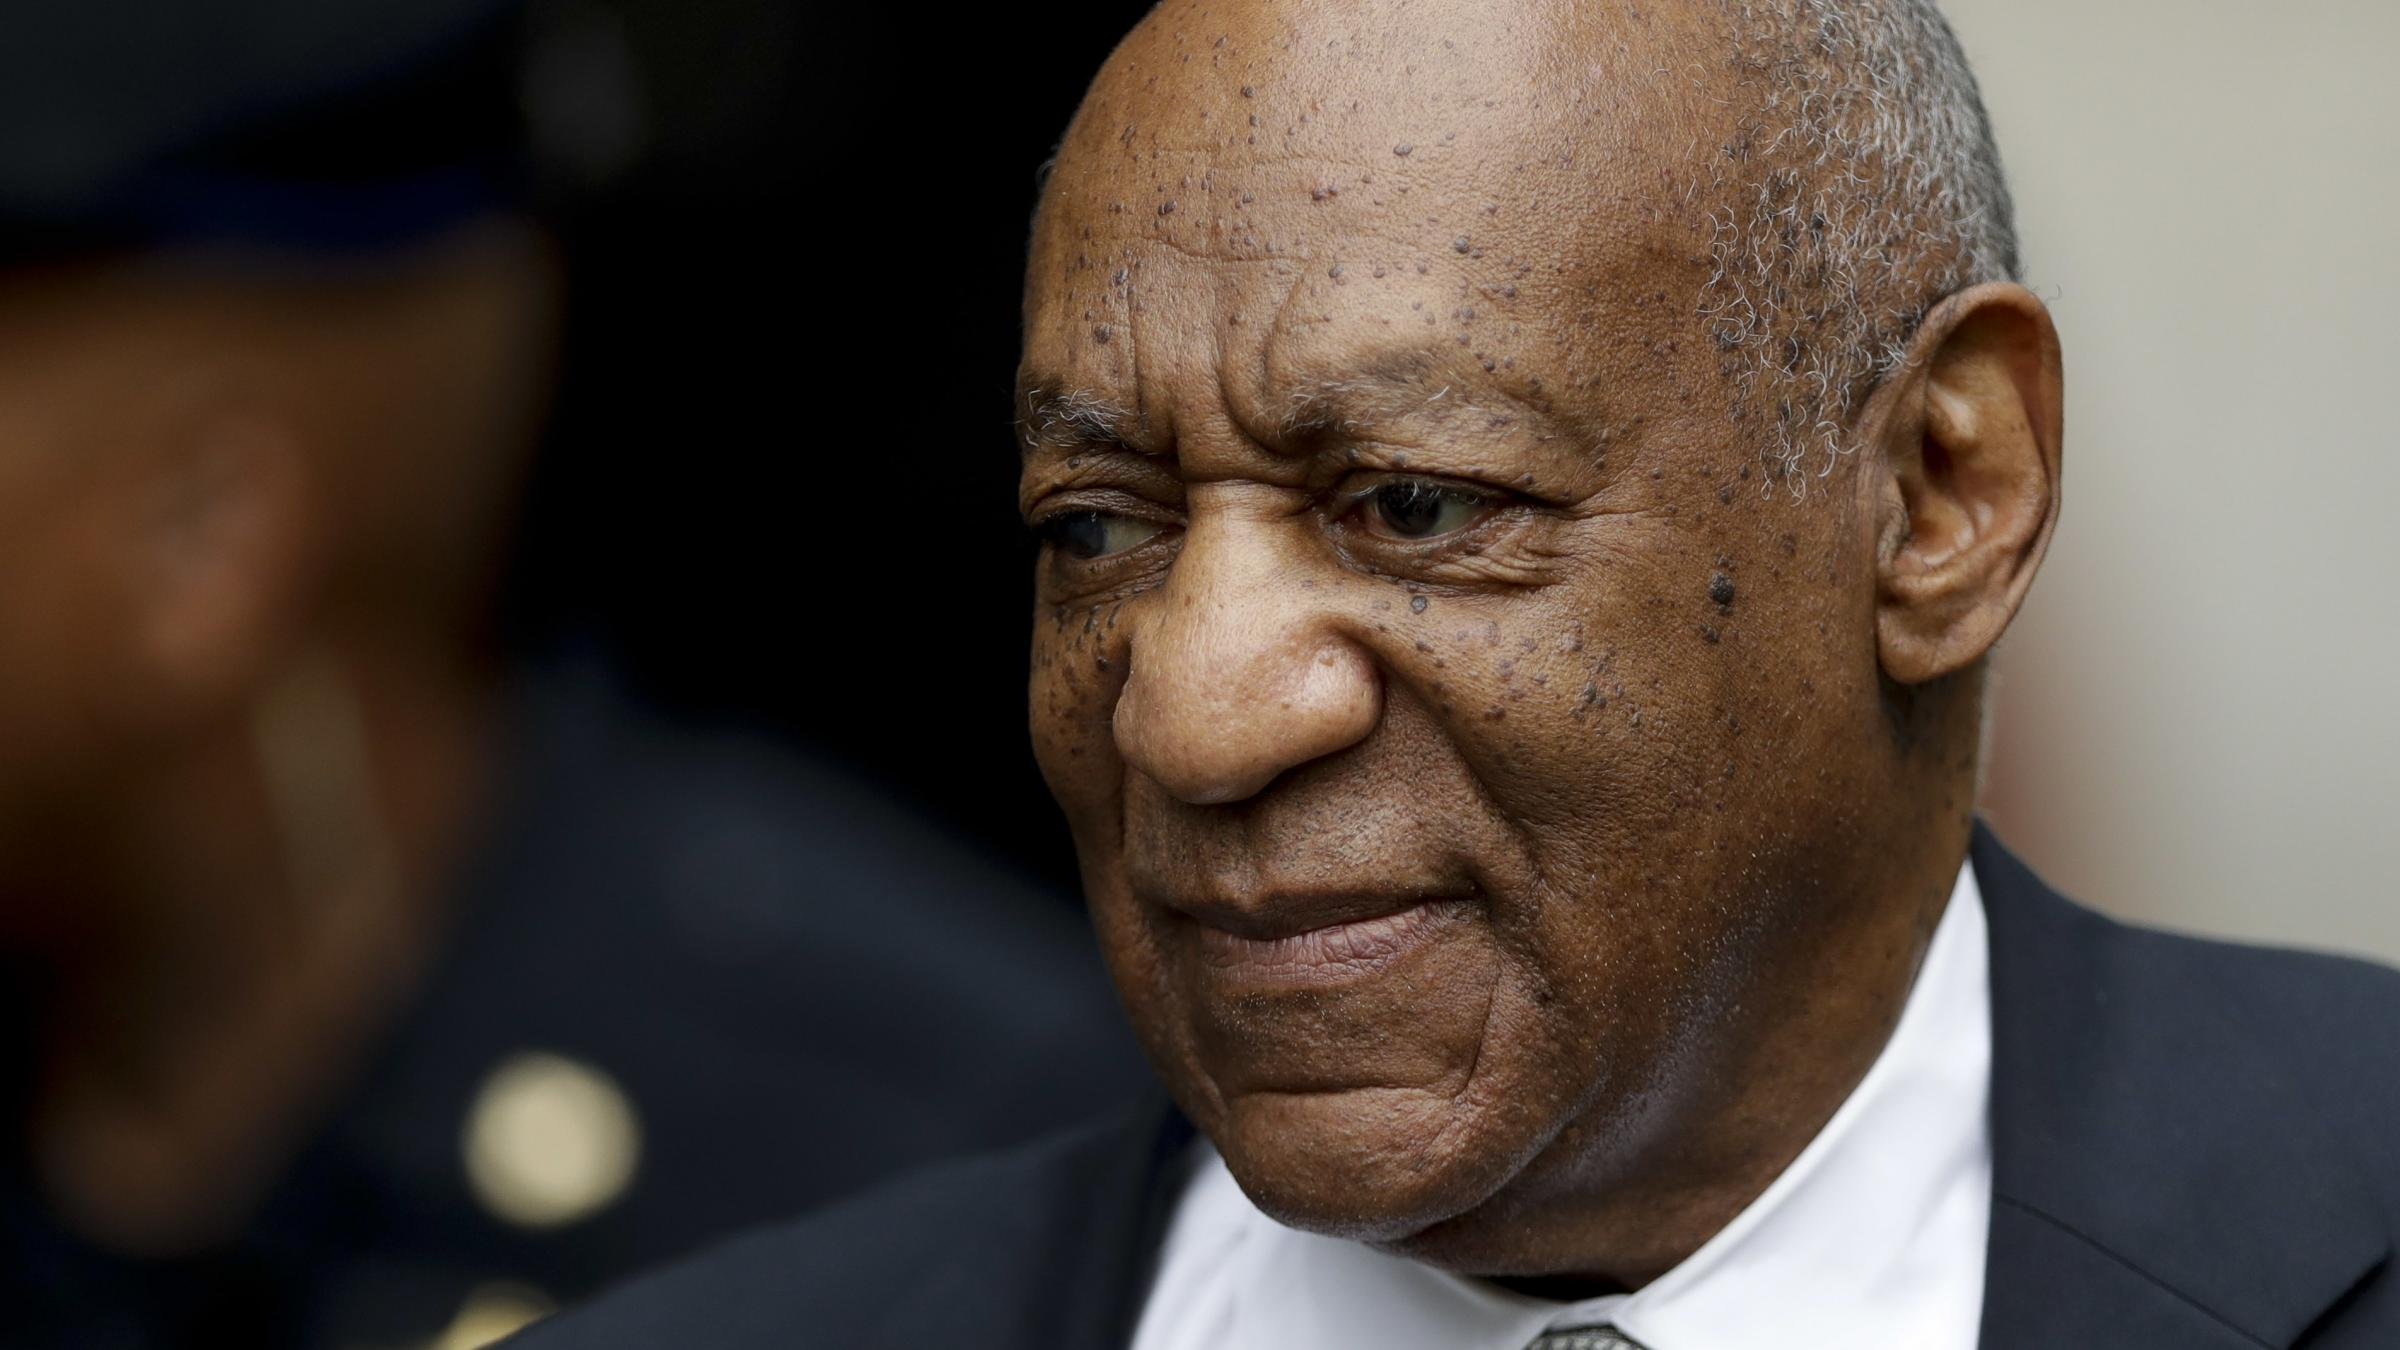 Deadlocked jury in Bill Cosby sex case asks judge for guidance